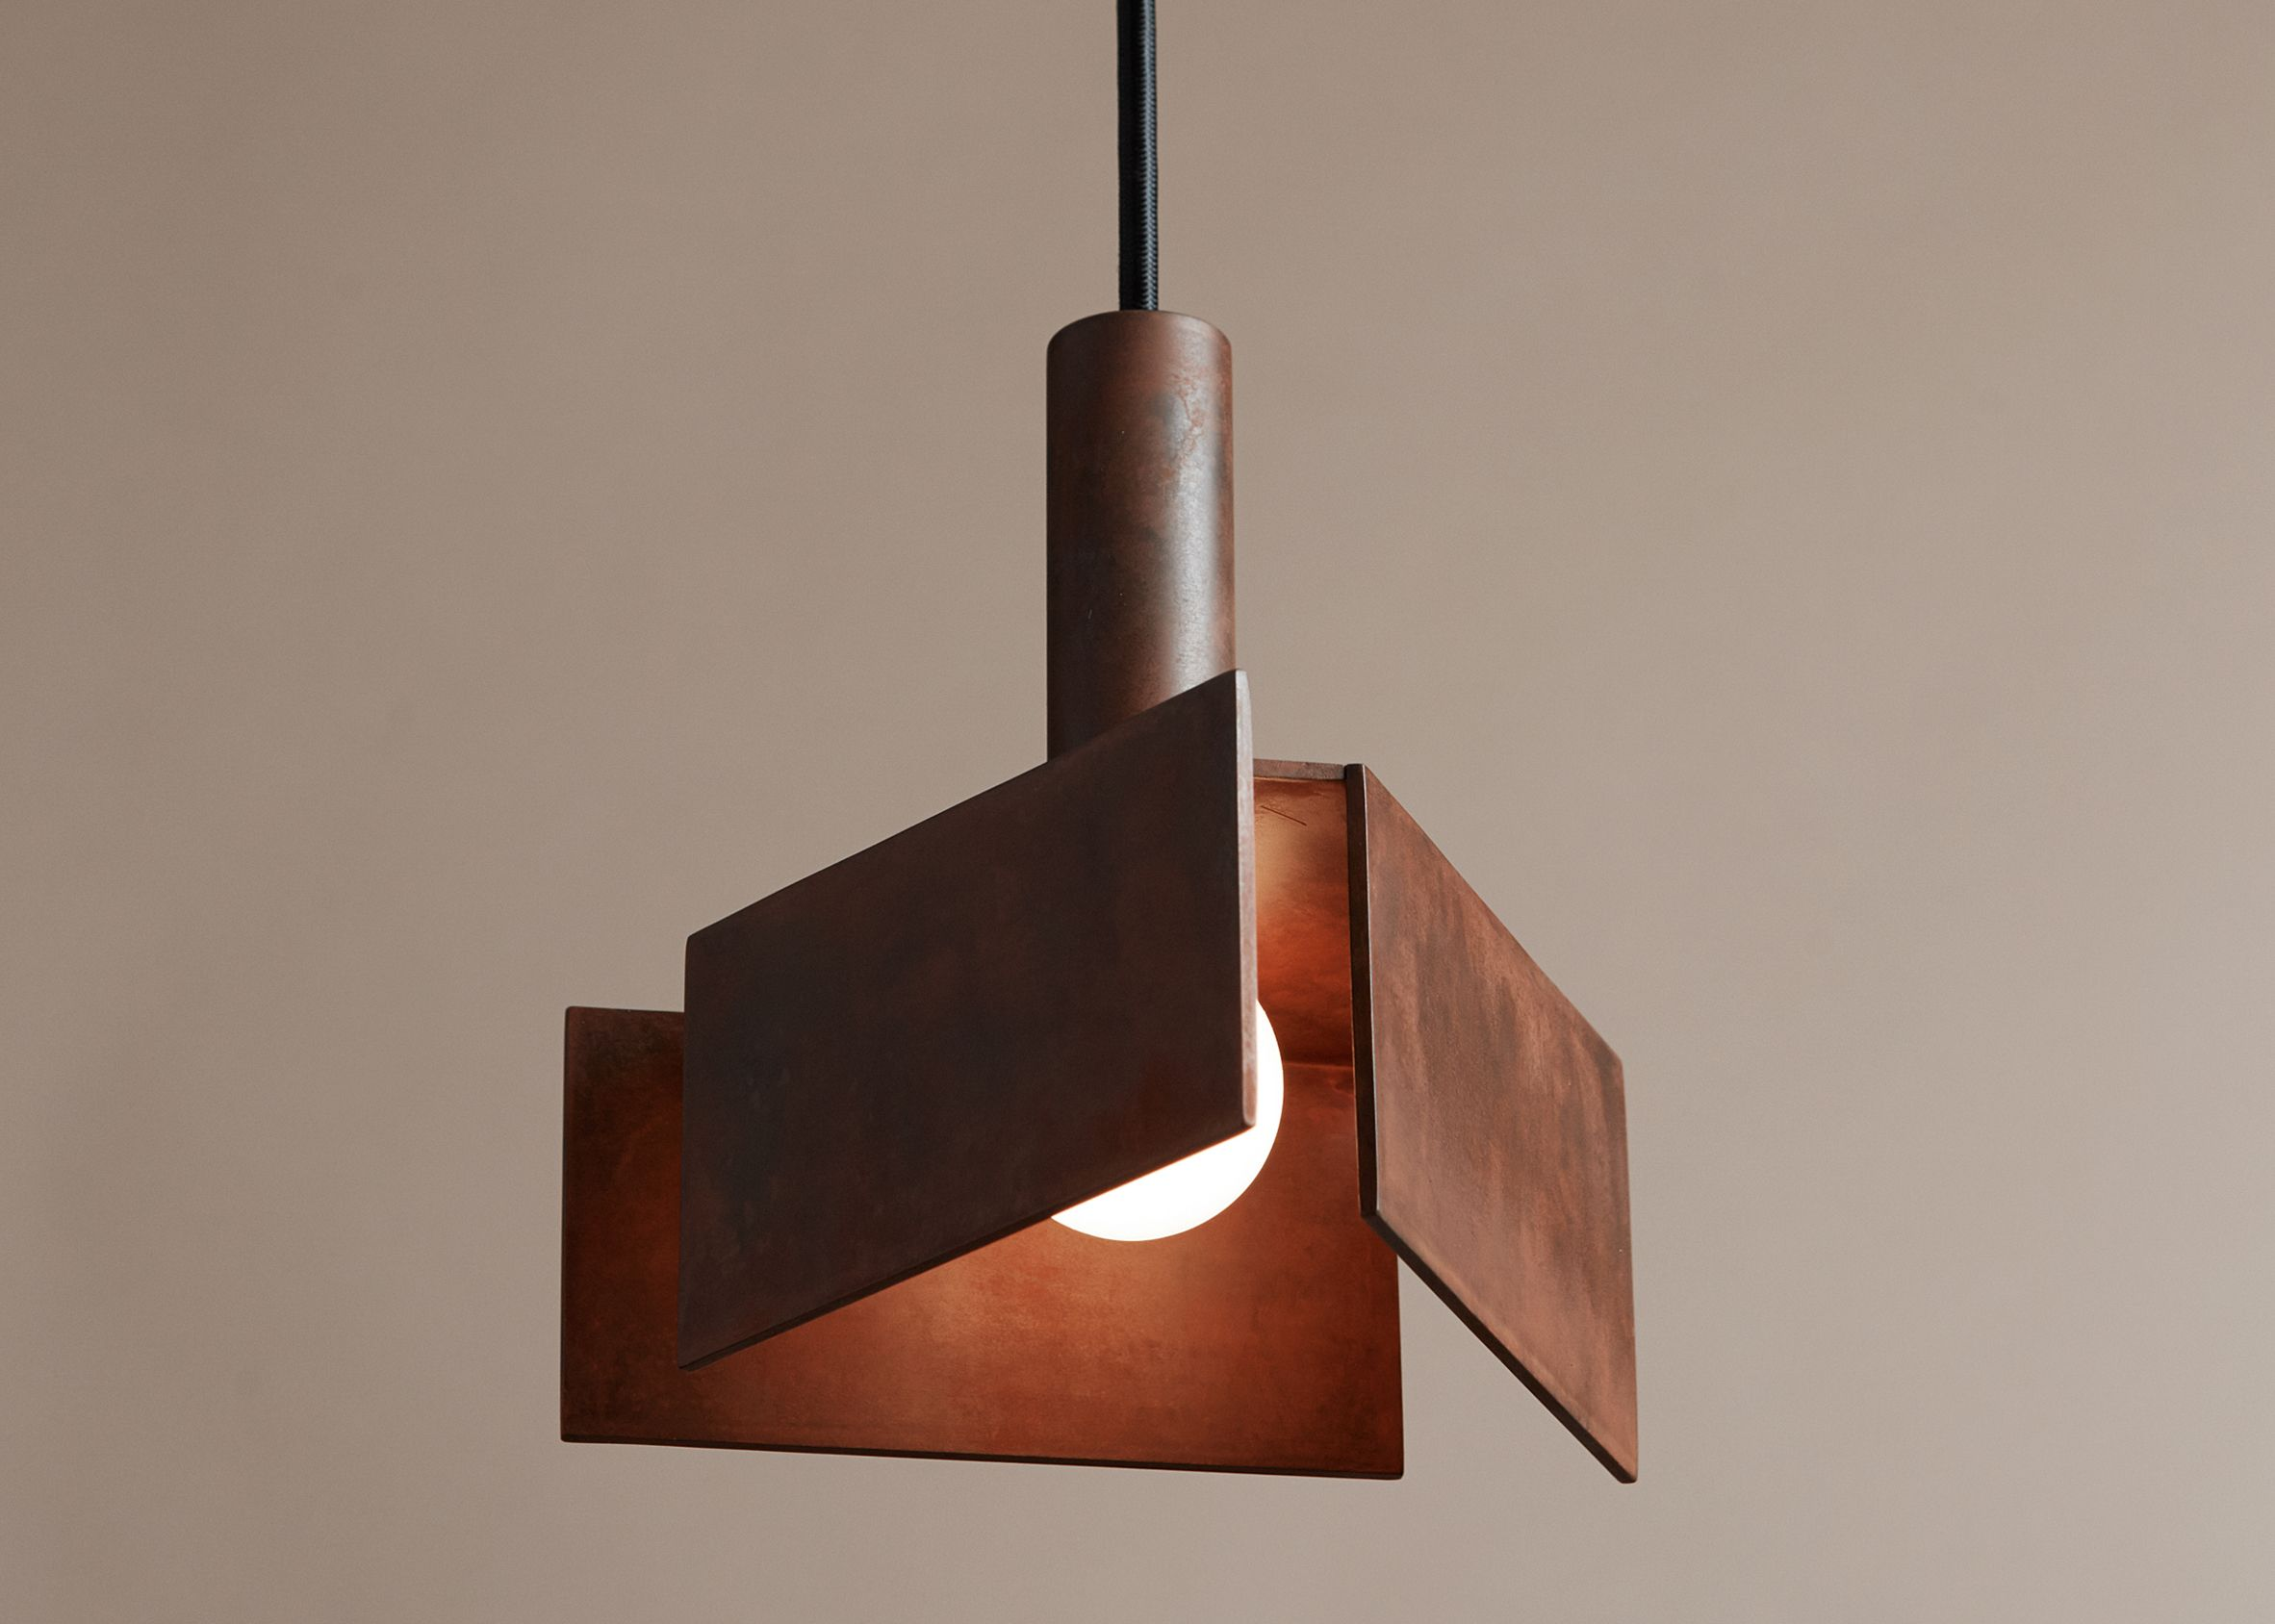 Pelle introduces geometric lighting with weathered steel fins at ids toronto